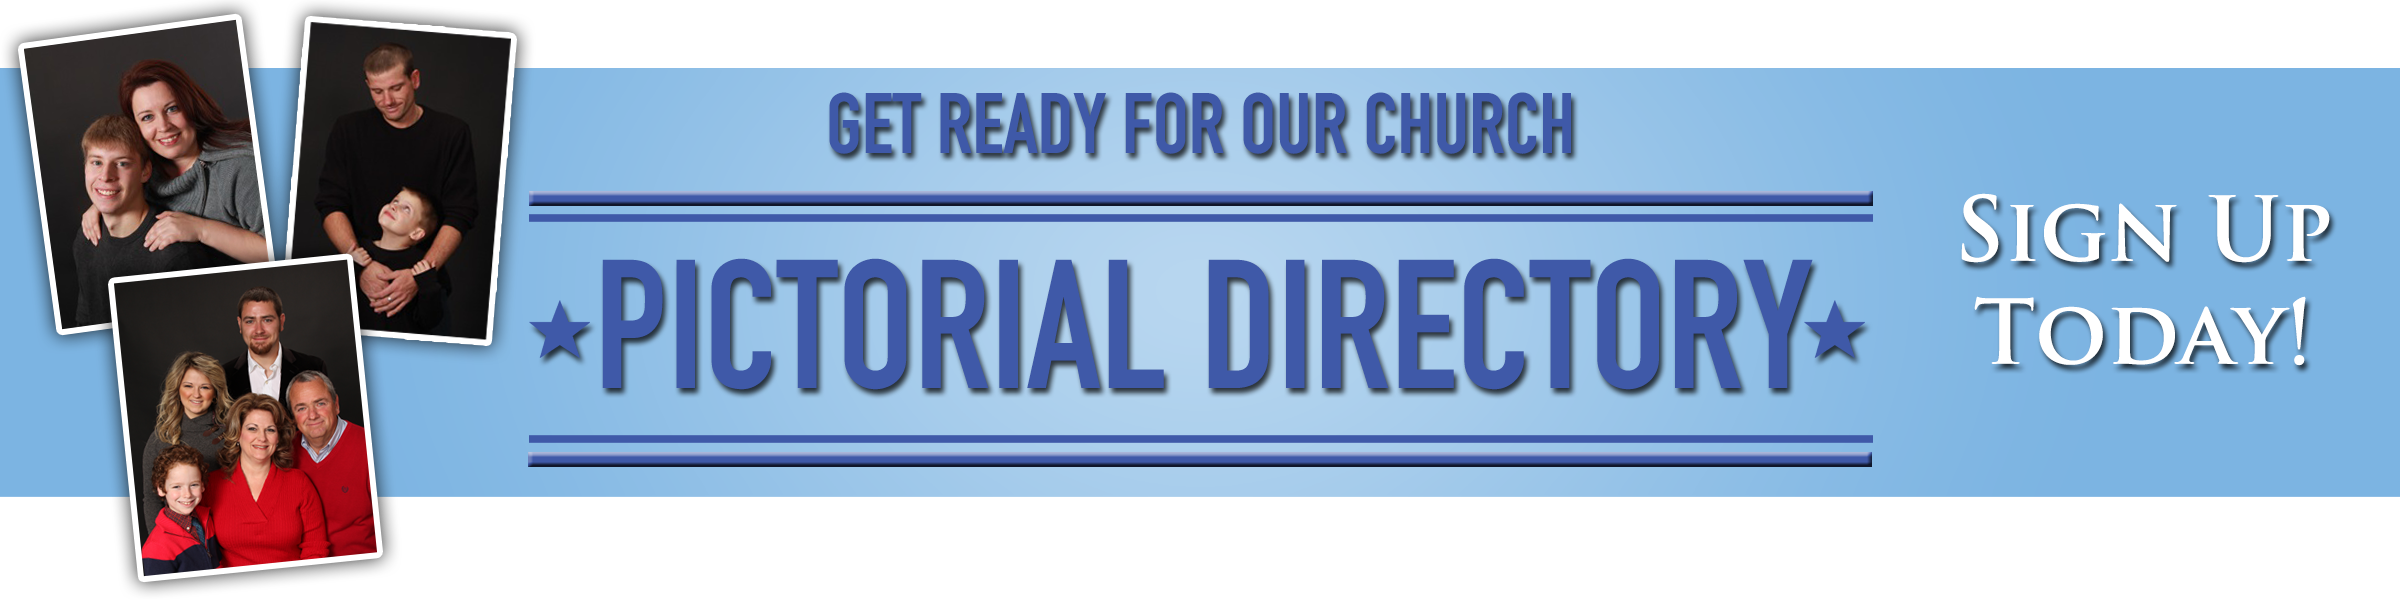 Yearbook clipart pictorial directory. Goodman oaks church of